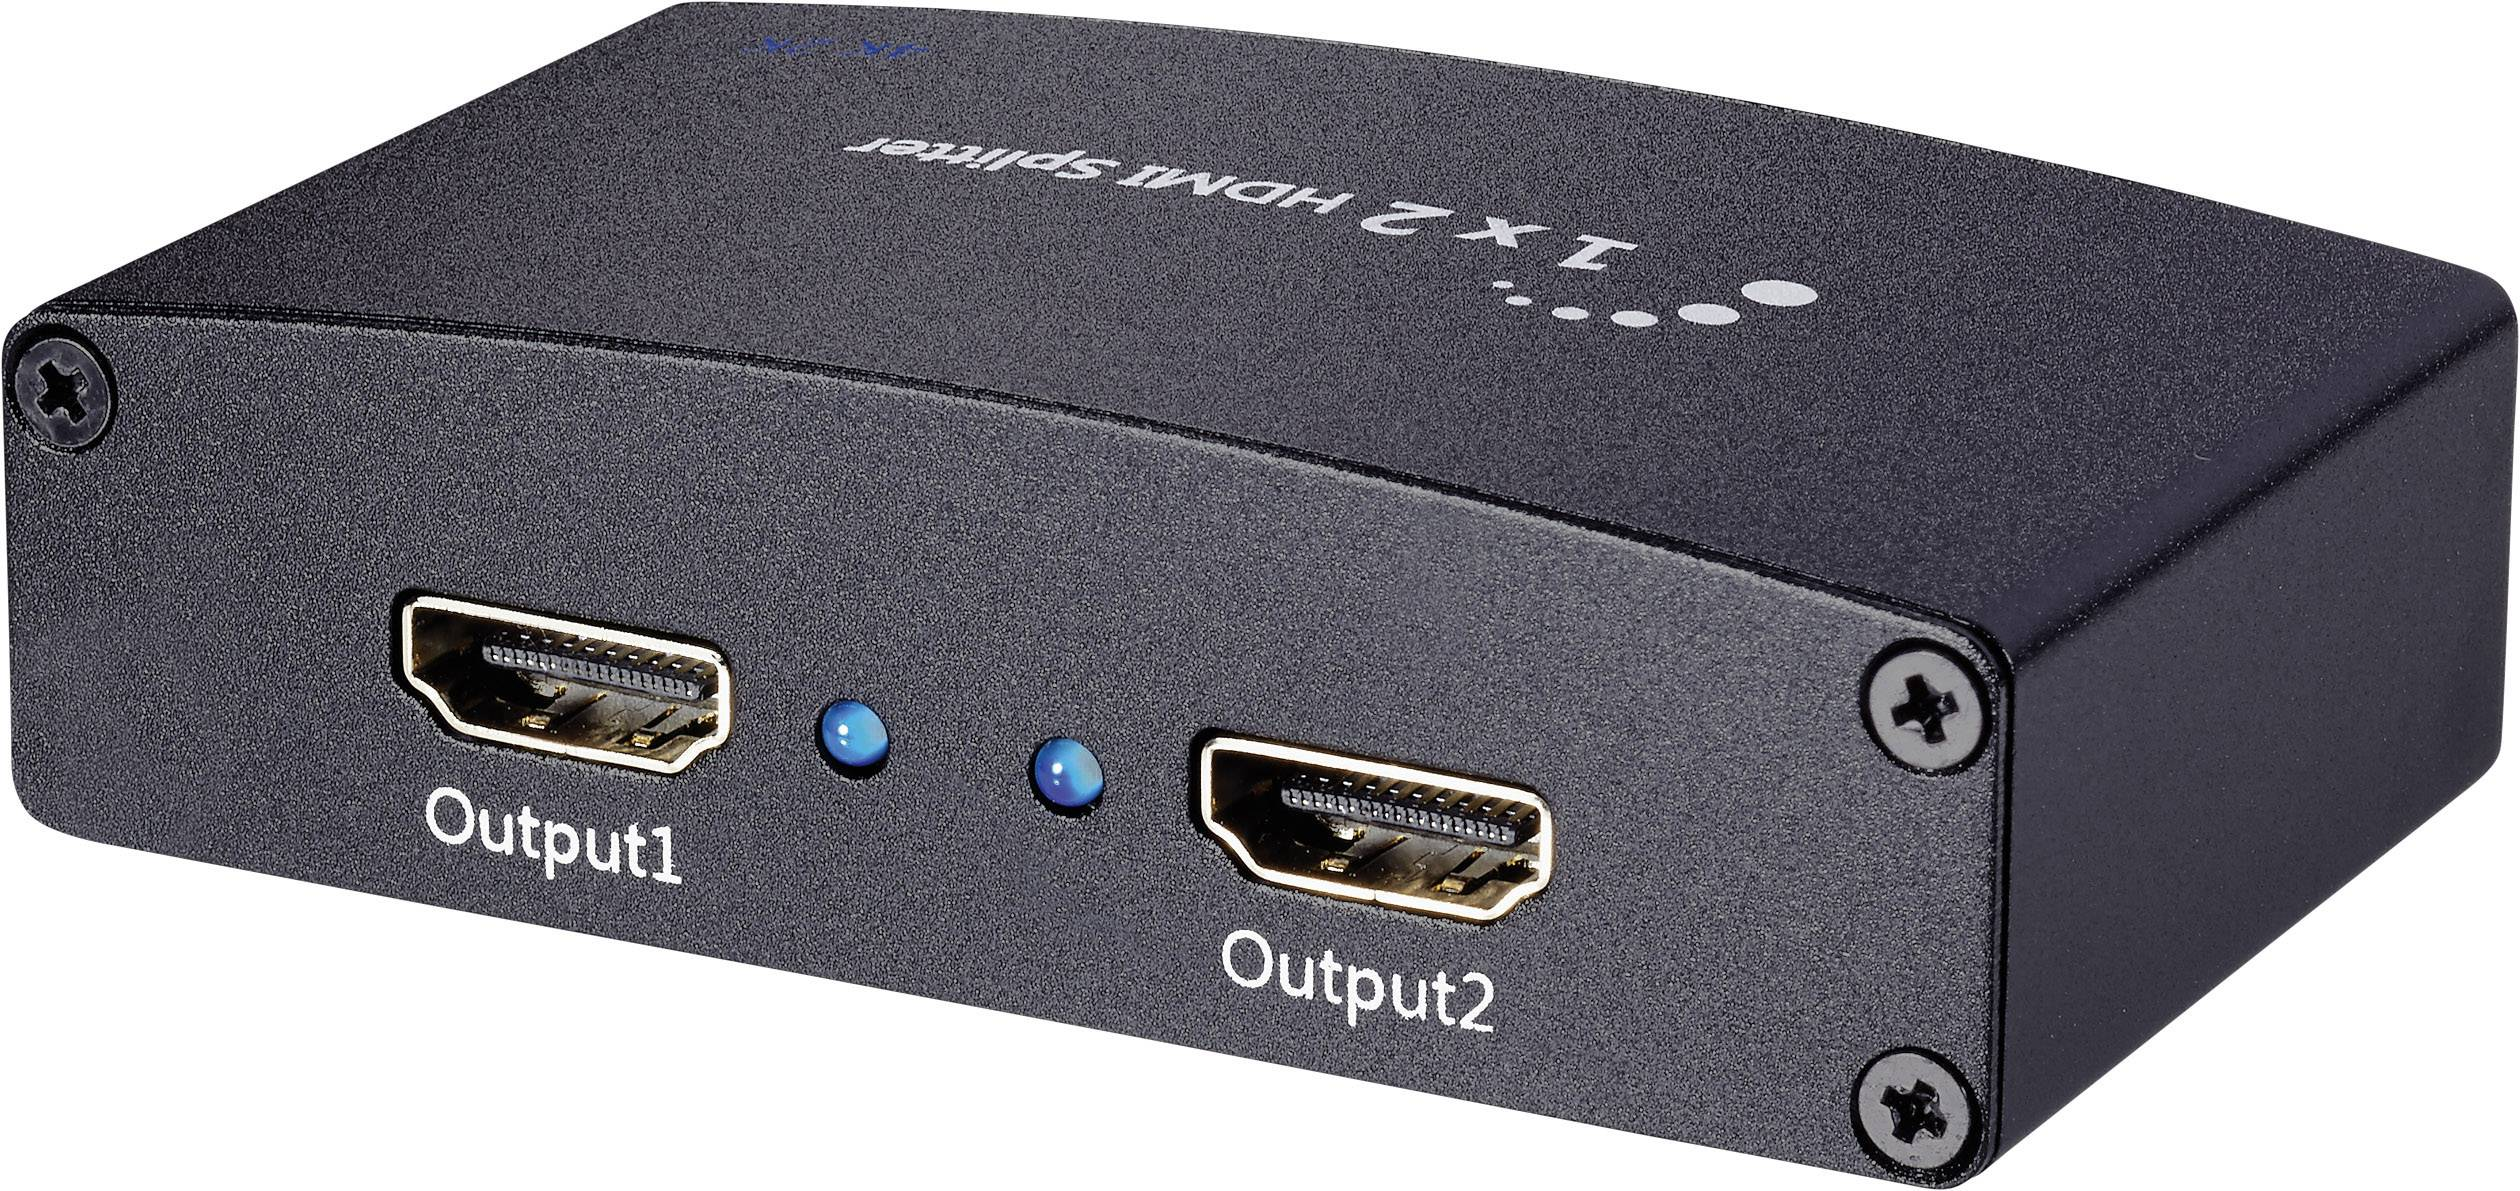 Inakustik 3247012 2 ports HDMI splitter + built-in repeater 1920 x